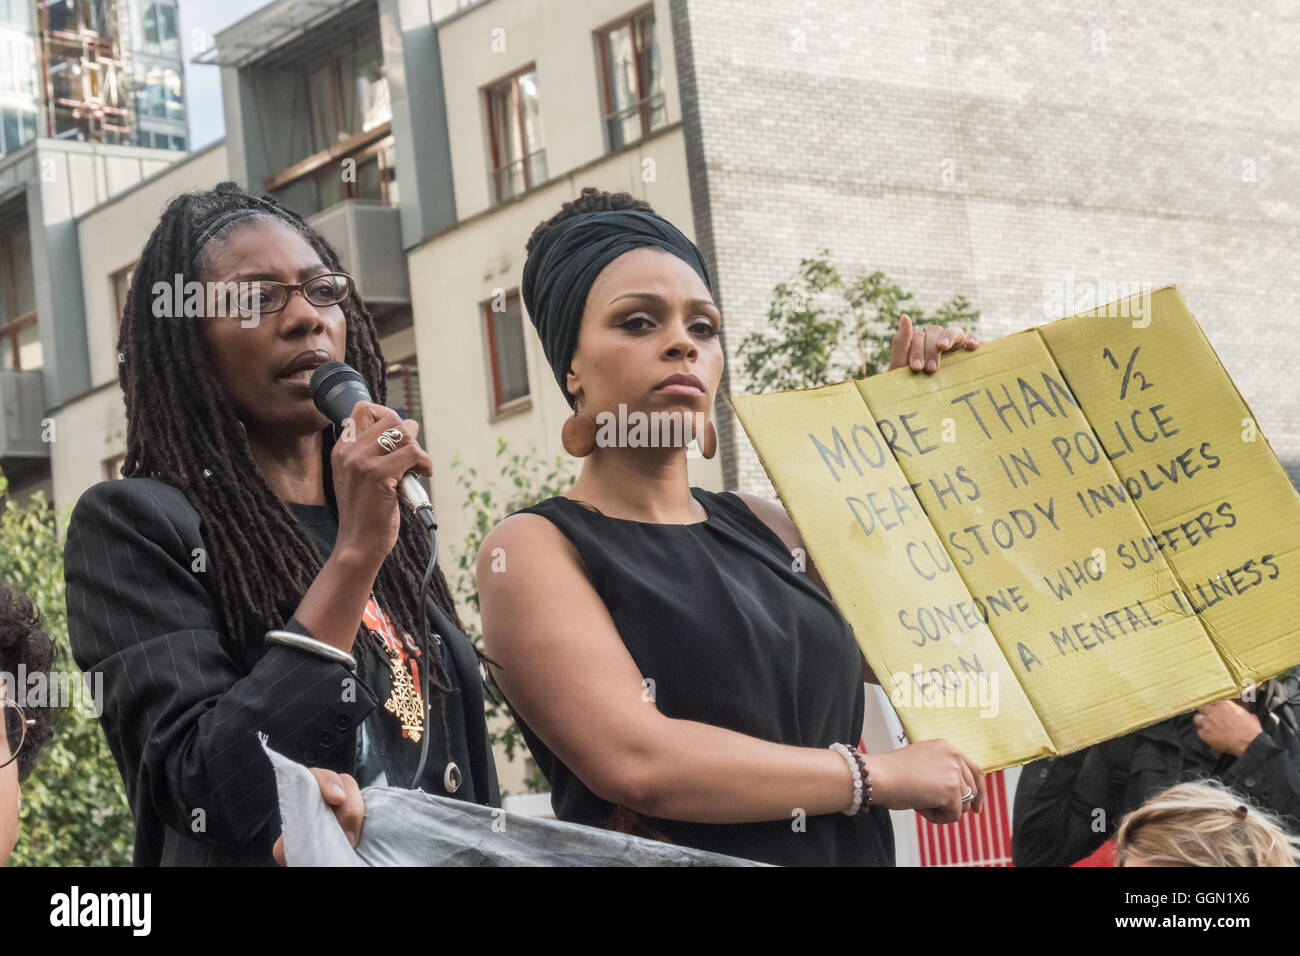 London, UK. 5th Aug, 2016. Marcia Rigg, whose brother Sean Rigg was killed by police in Brixton in 2008, speaks - Stock Image